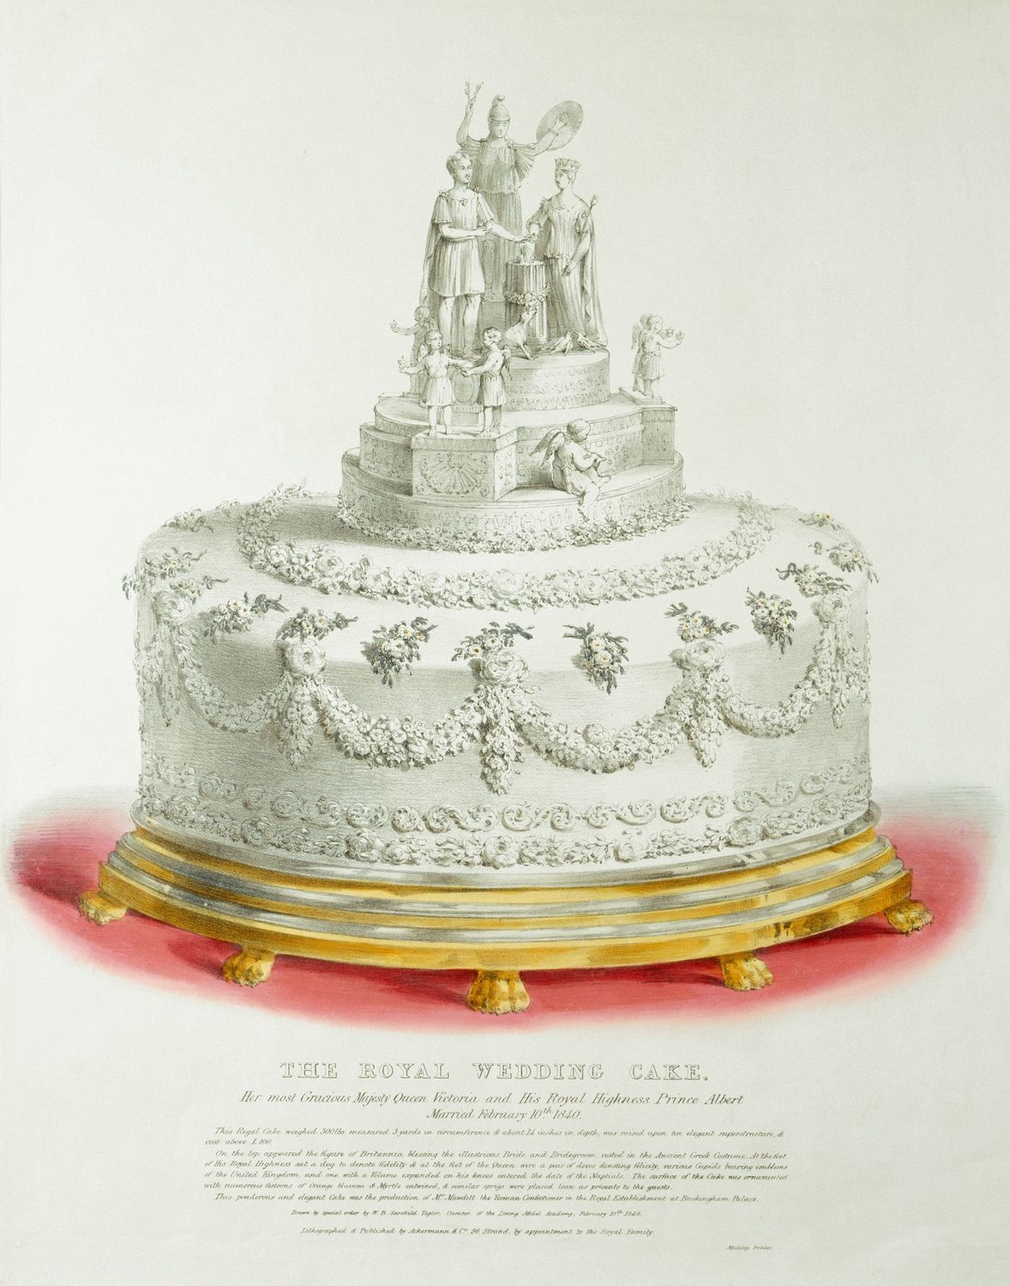 A hand-coloured lithograph of one of the royal wedding cakes produced for the wedding of Queen Victoria and Prince Albert on 10 February 1840. Lettered below with title, publication details and a description of the cake and its decoration.<br /><br />This